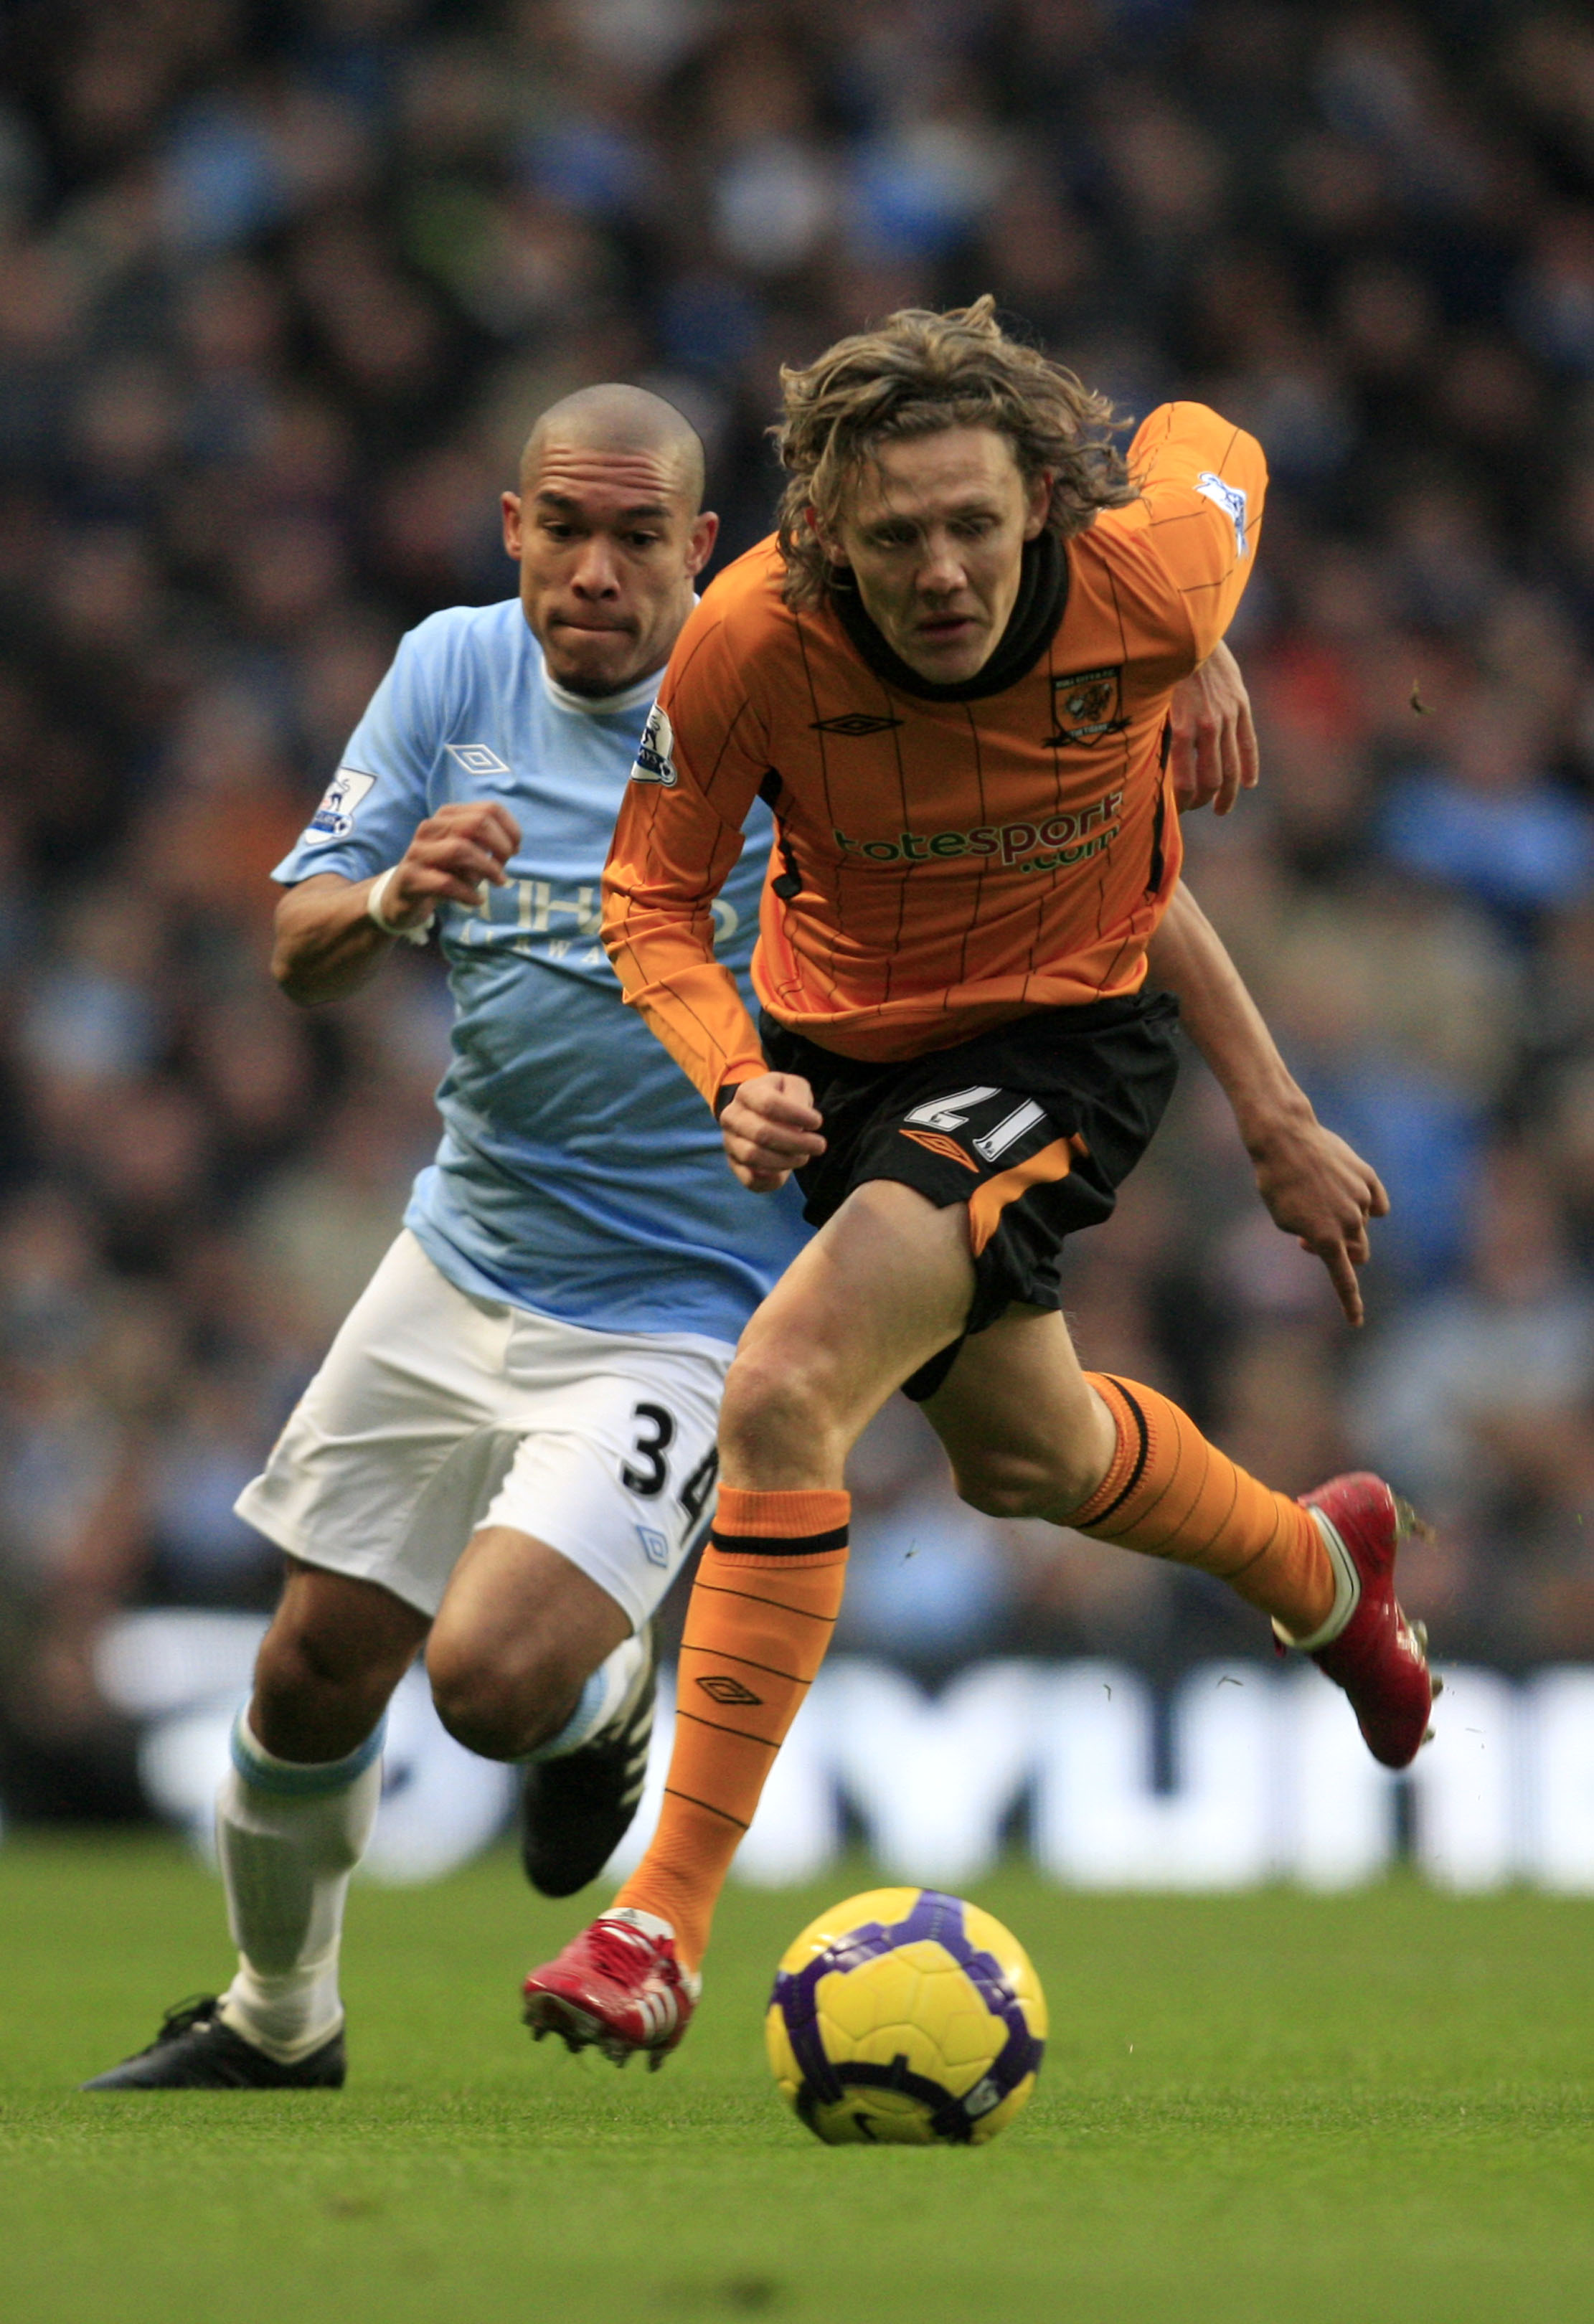 MANCHESTER, ENGLAND - NOVEMBER 28:  Jimmy Bullard of Hull City gets away from Nigel De Jong of Manchester City during the Barclays Premier League match between Manchester City and Hull City at the City of Manchester Stadium on November 28, 2009 in Manches